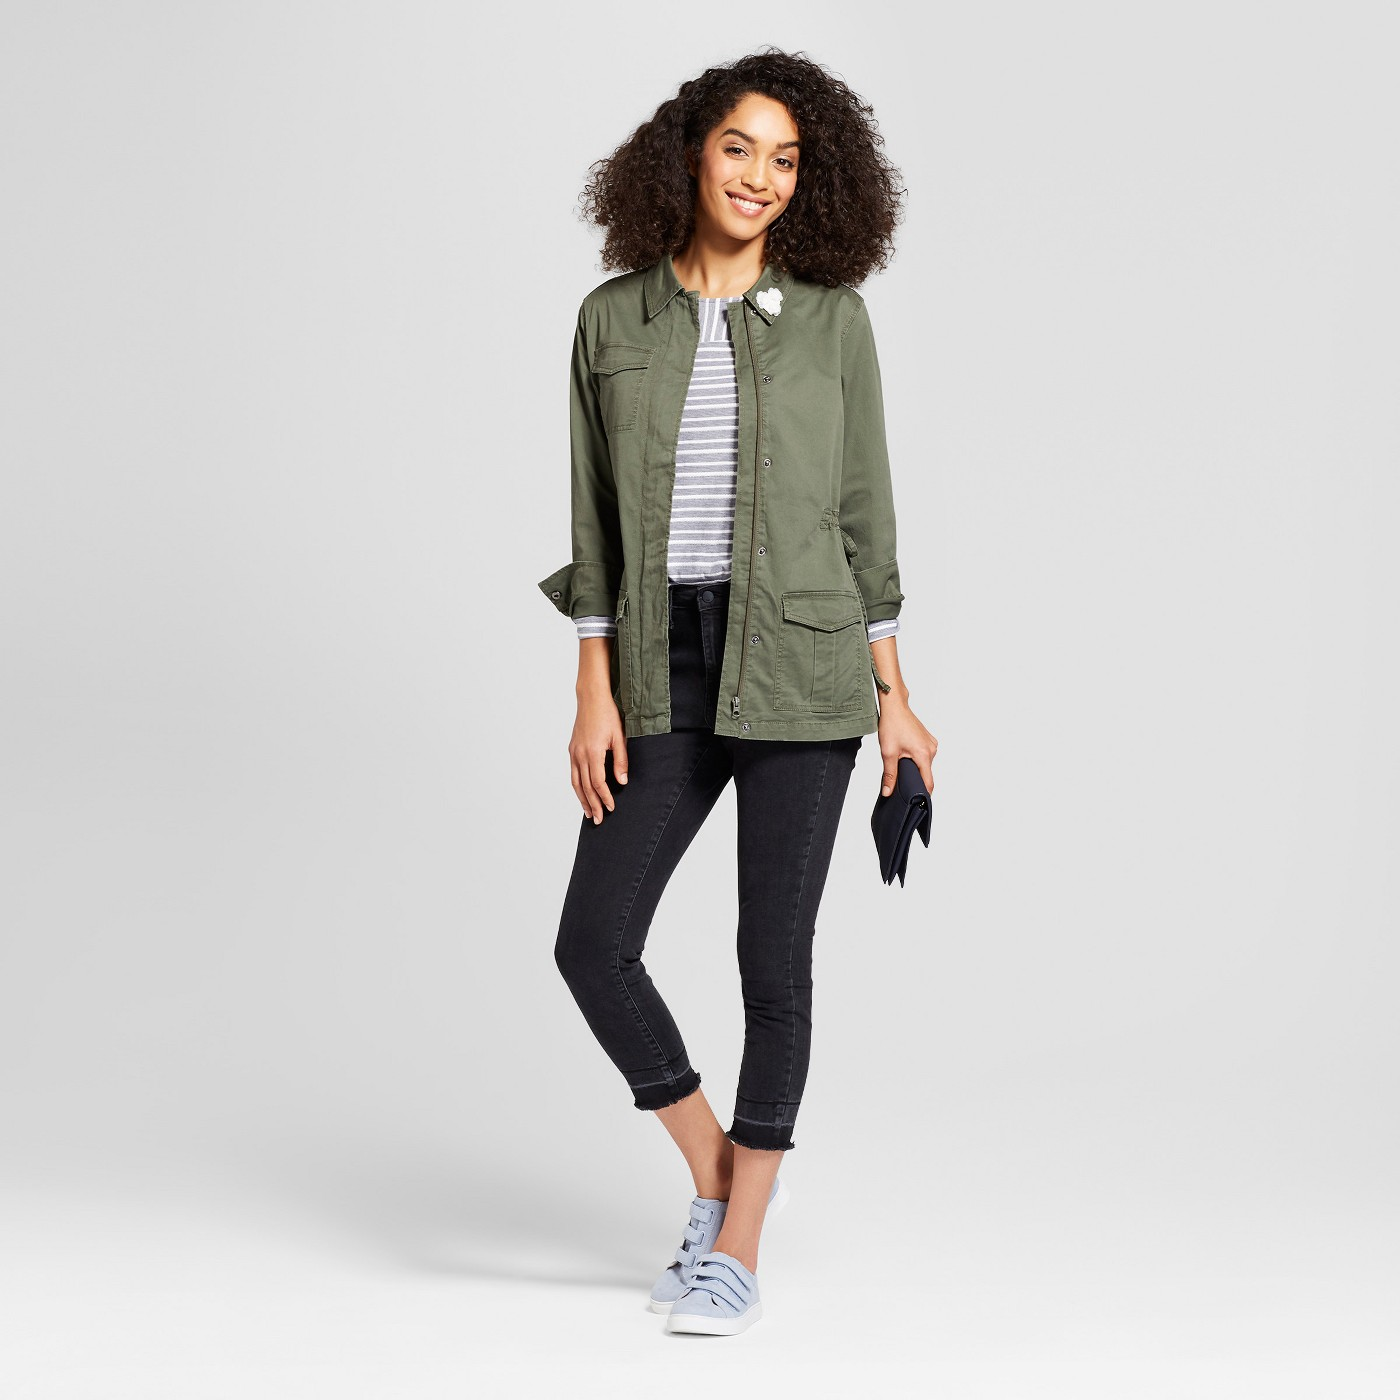 "Women's Military Jacket - A New Dayâ""¢ Olive - image 3 of 3"